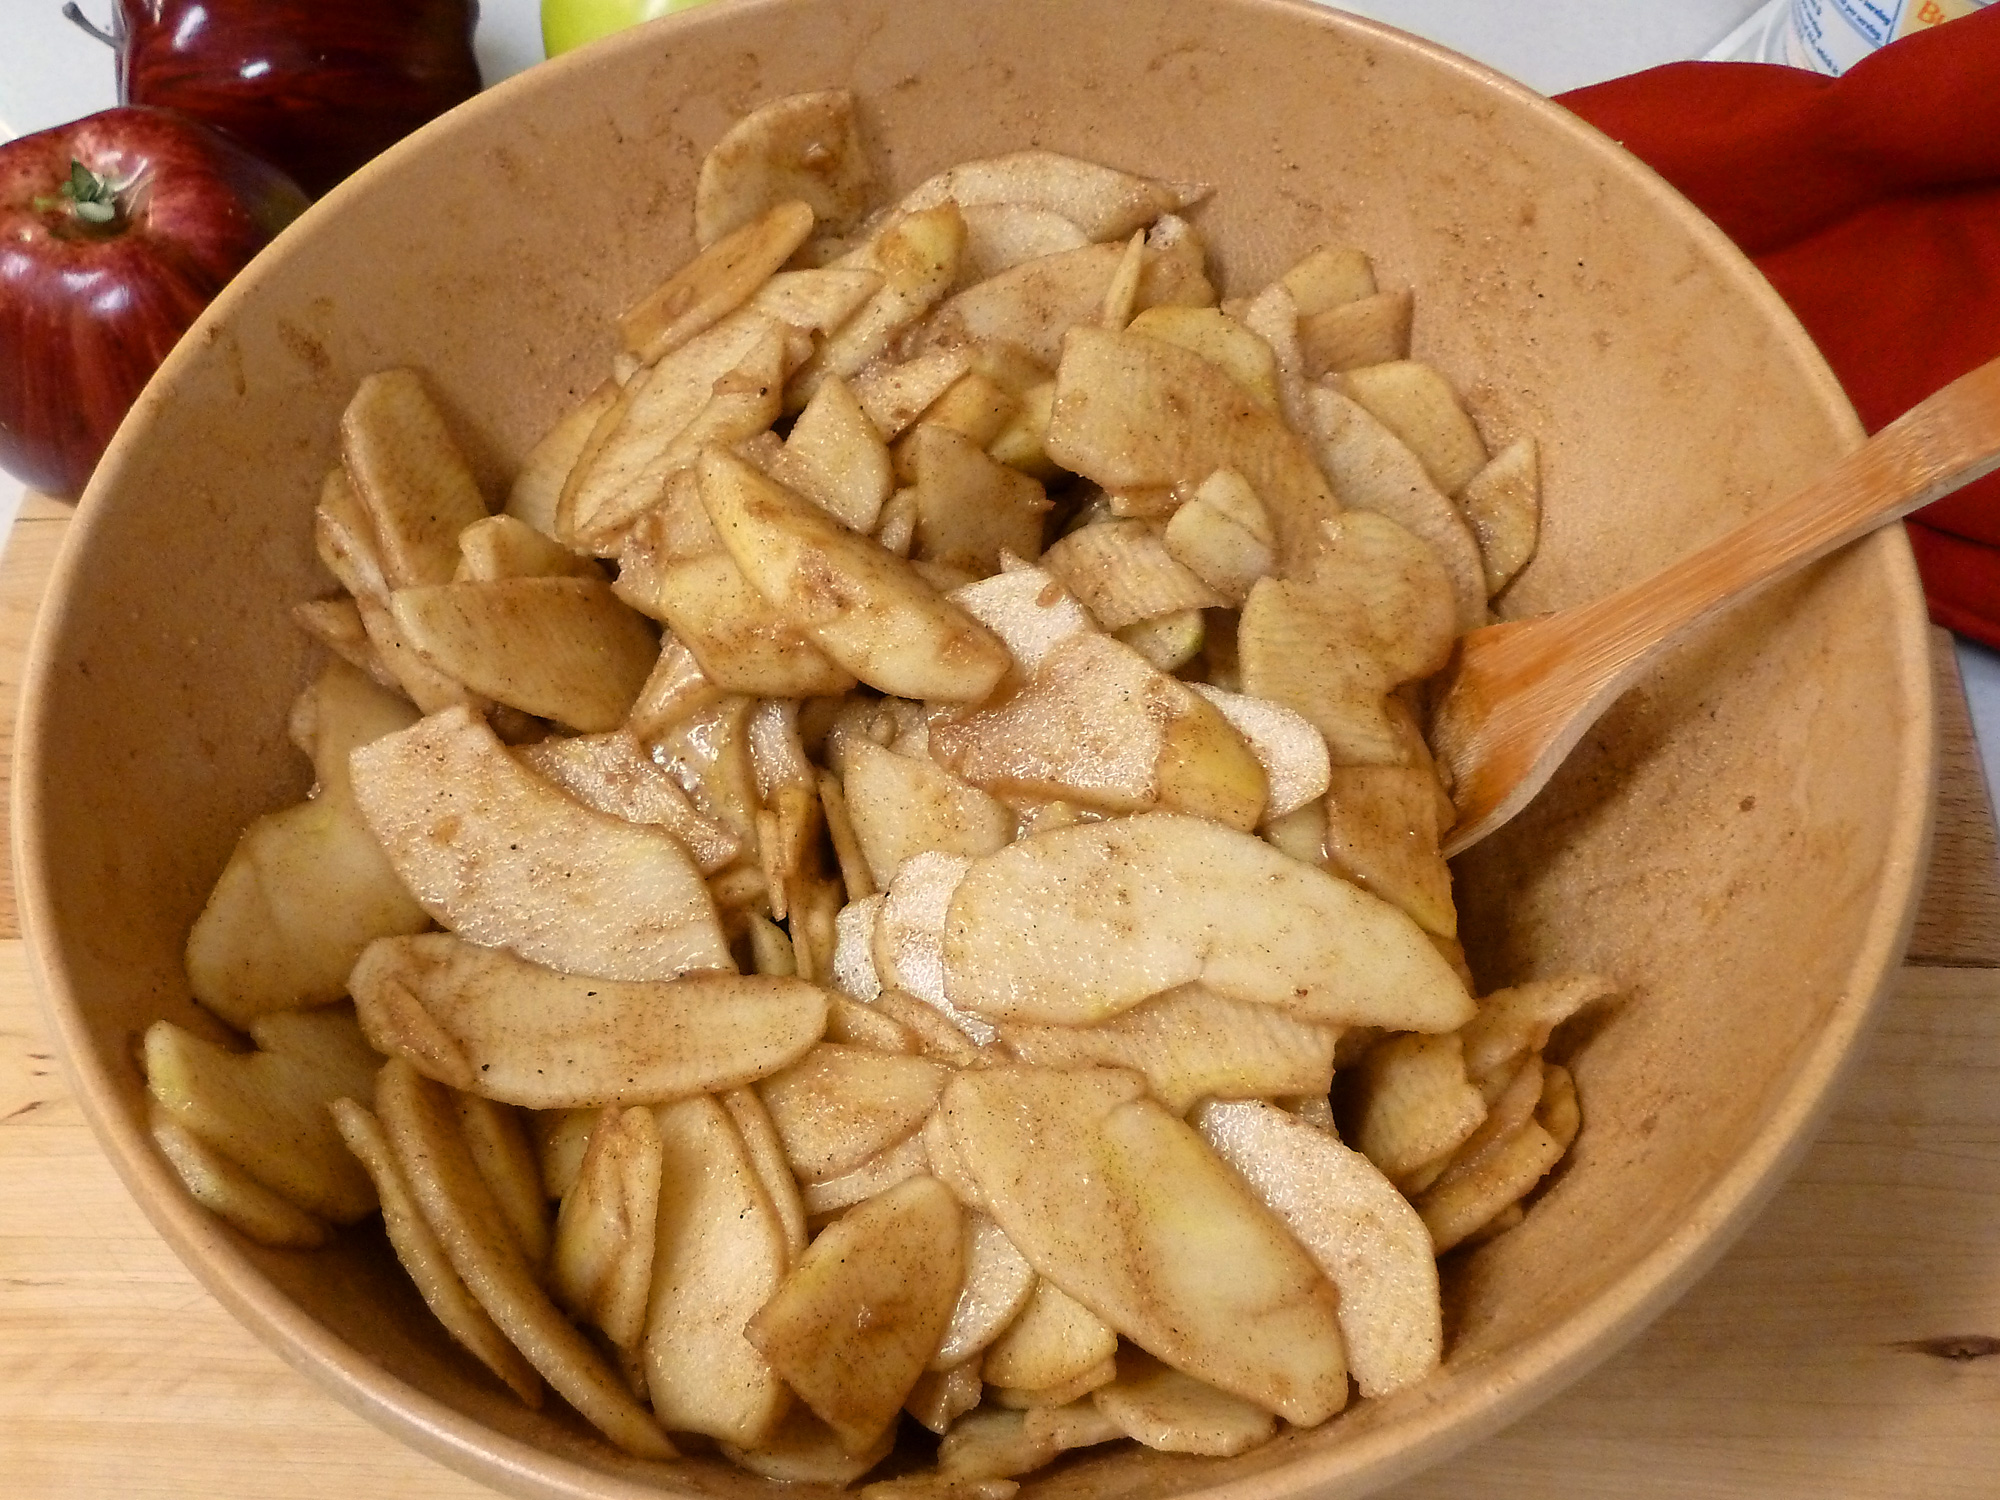 The apples are mixed with the Fireball Cinnamon Whiskey® and spices, ready to be covered with the crisp topping.